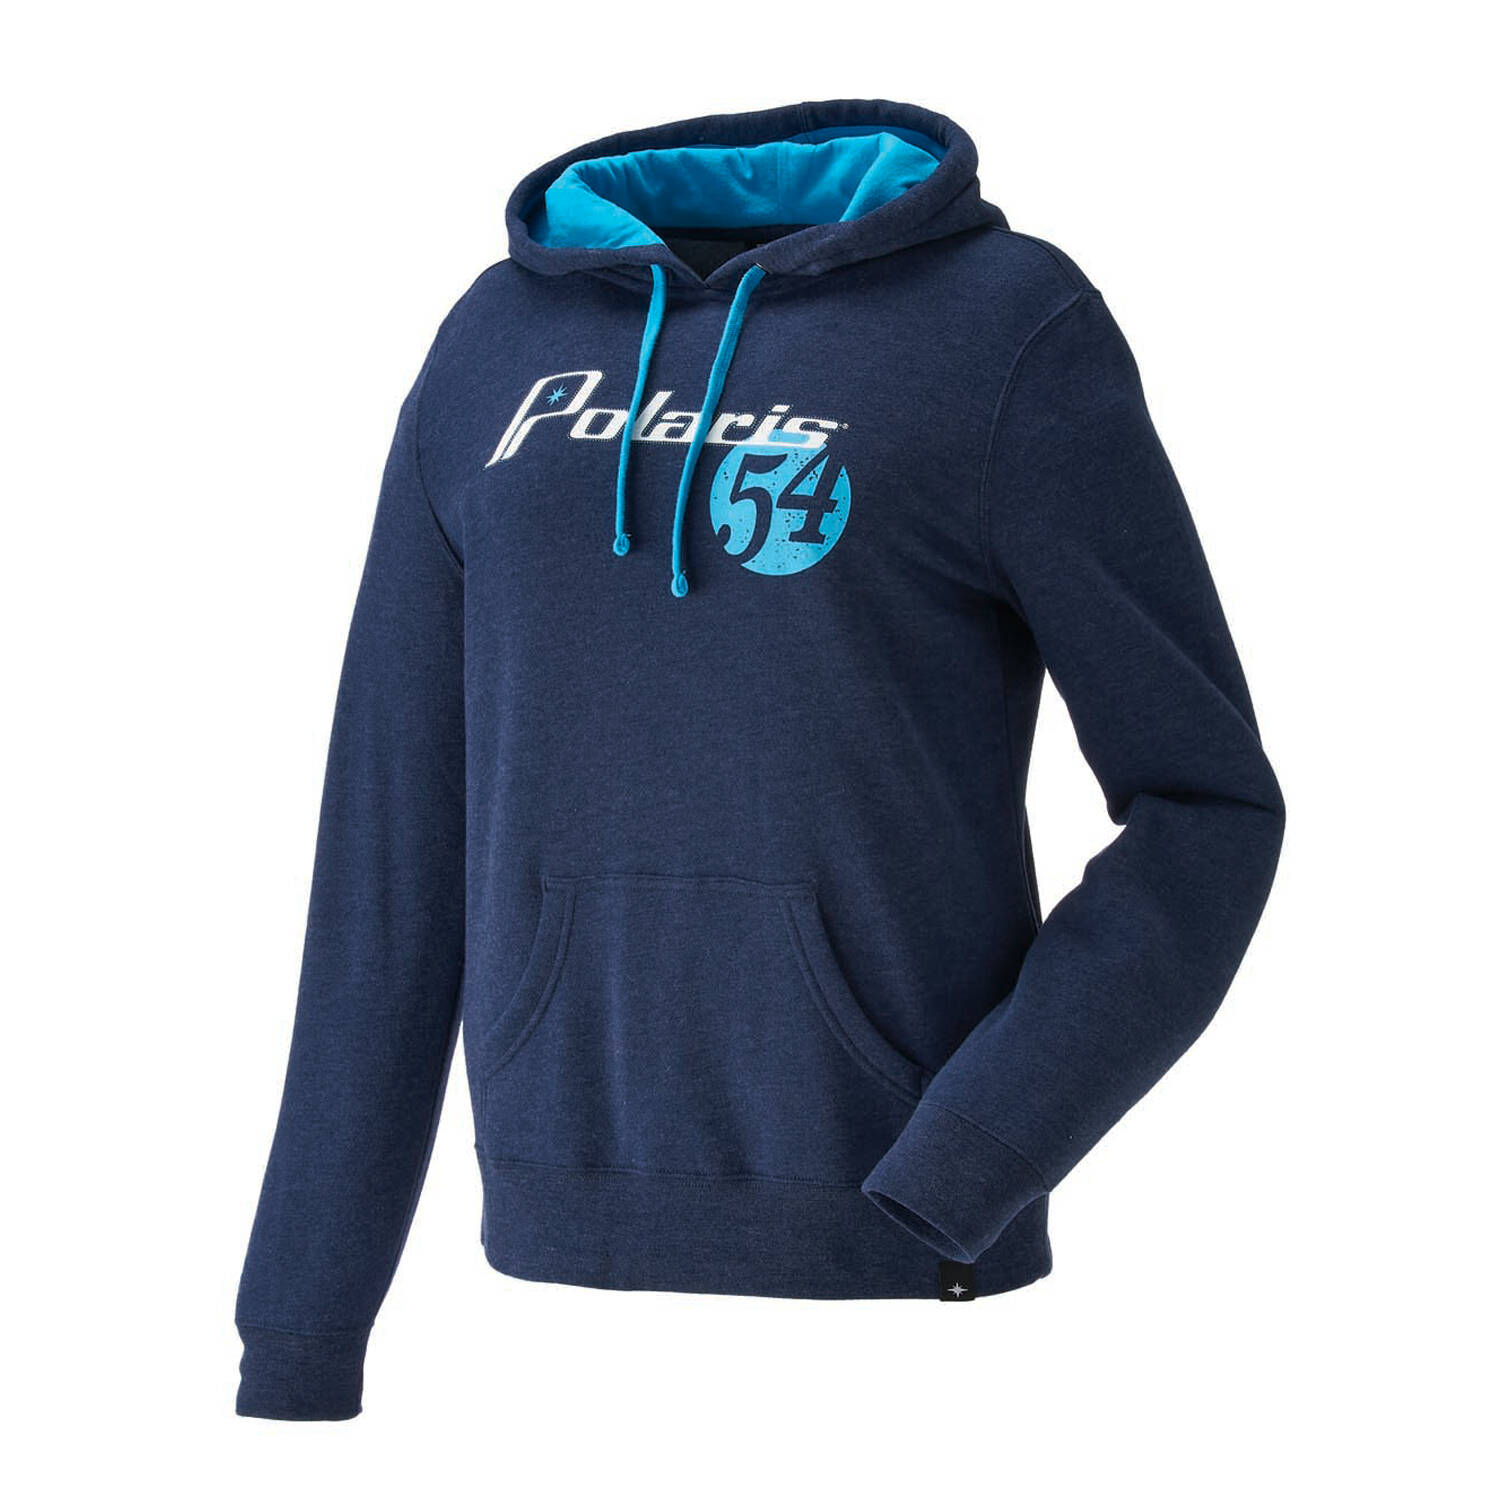 Women's Retro Hoodie Sweatshirt with Polaris® Logo, Navy